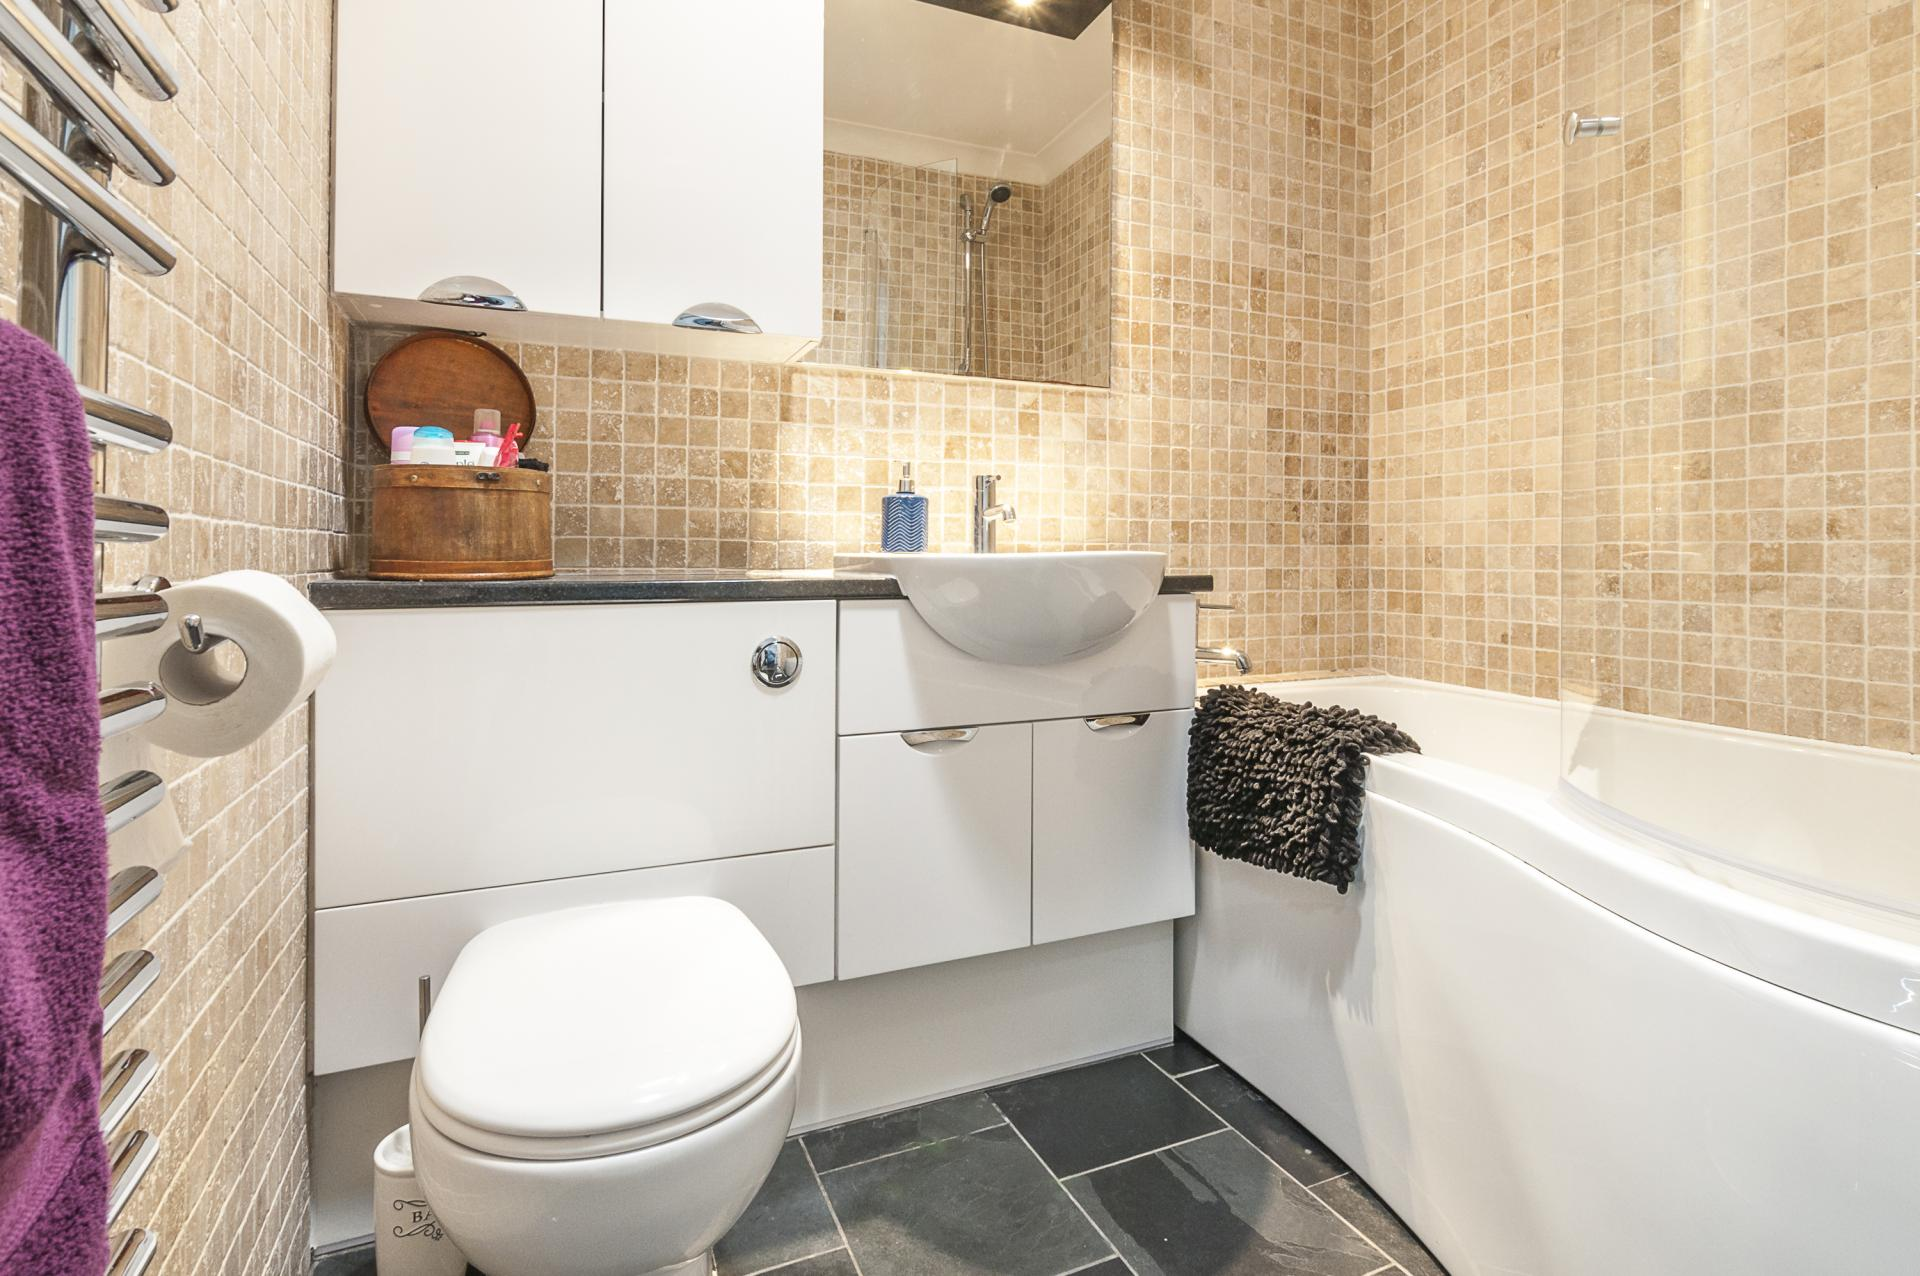 Bathroom at Old Lodge - Citybase Apartments